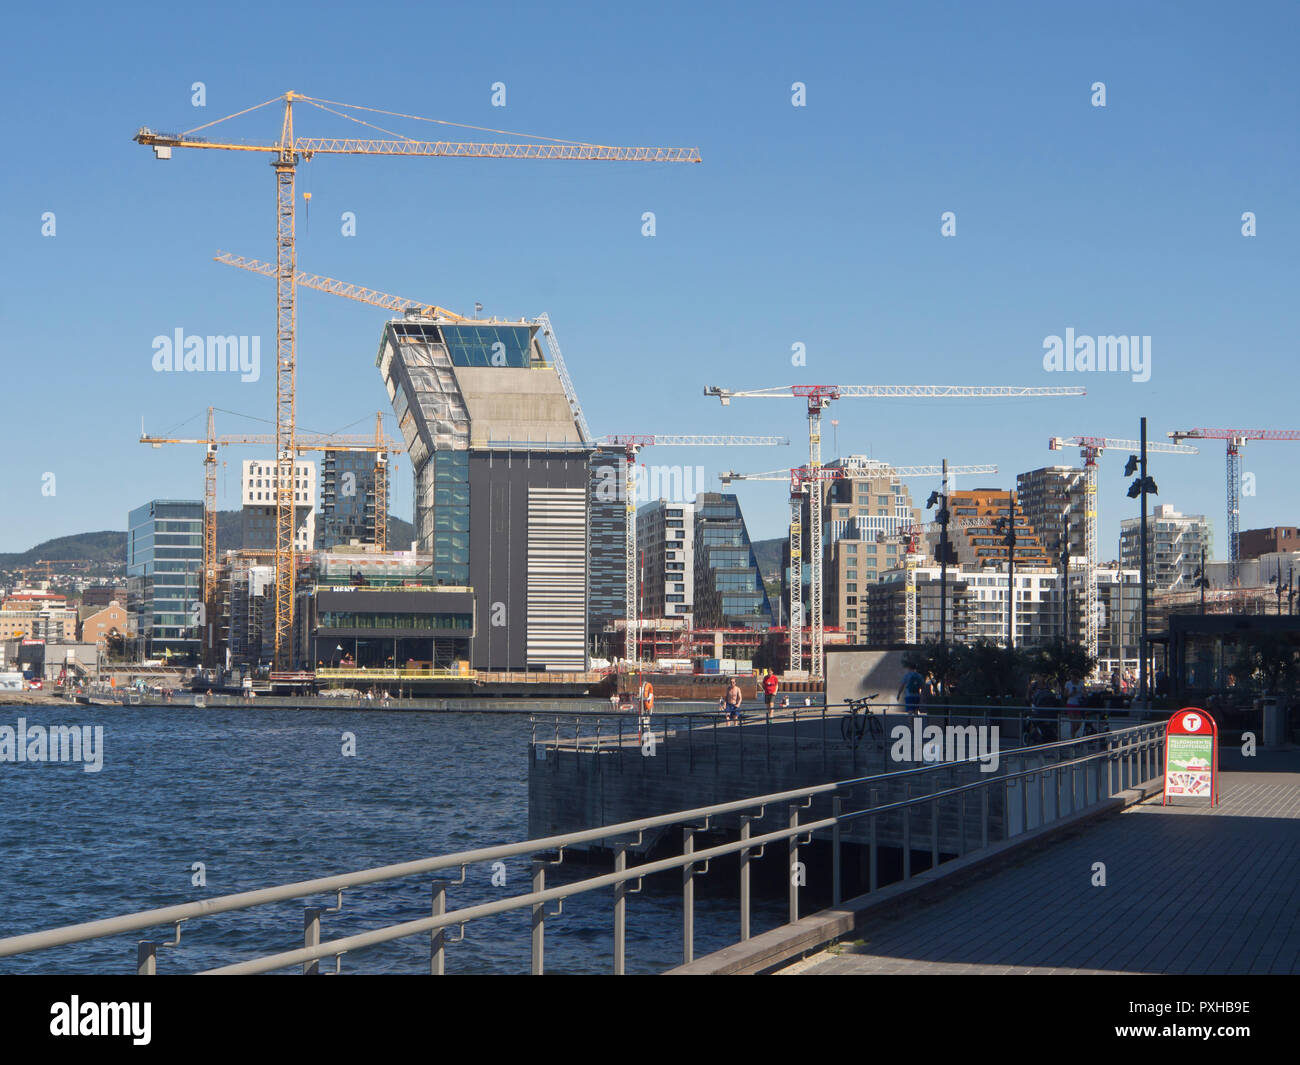 Busy building activity in the Bjørvika district of Oslo Norway.The angled construction of the new Munch museum rising by the Oslo Fjord - Stock Image